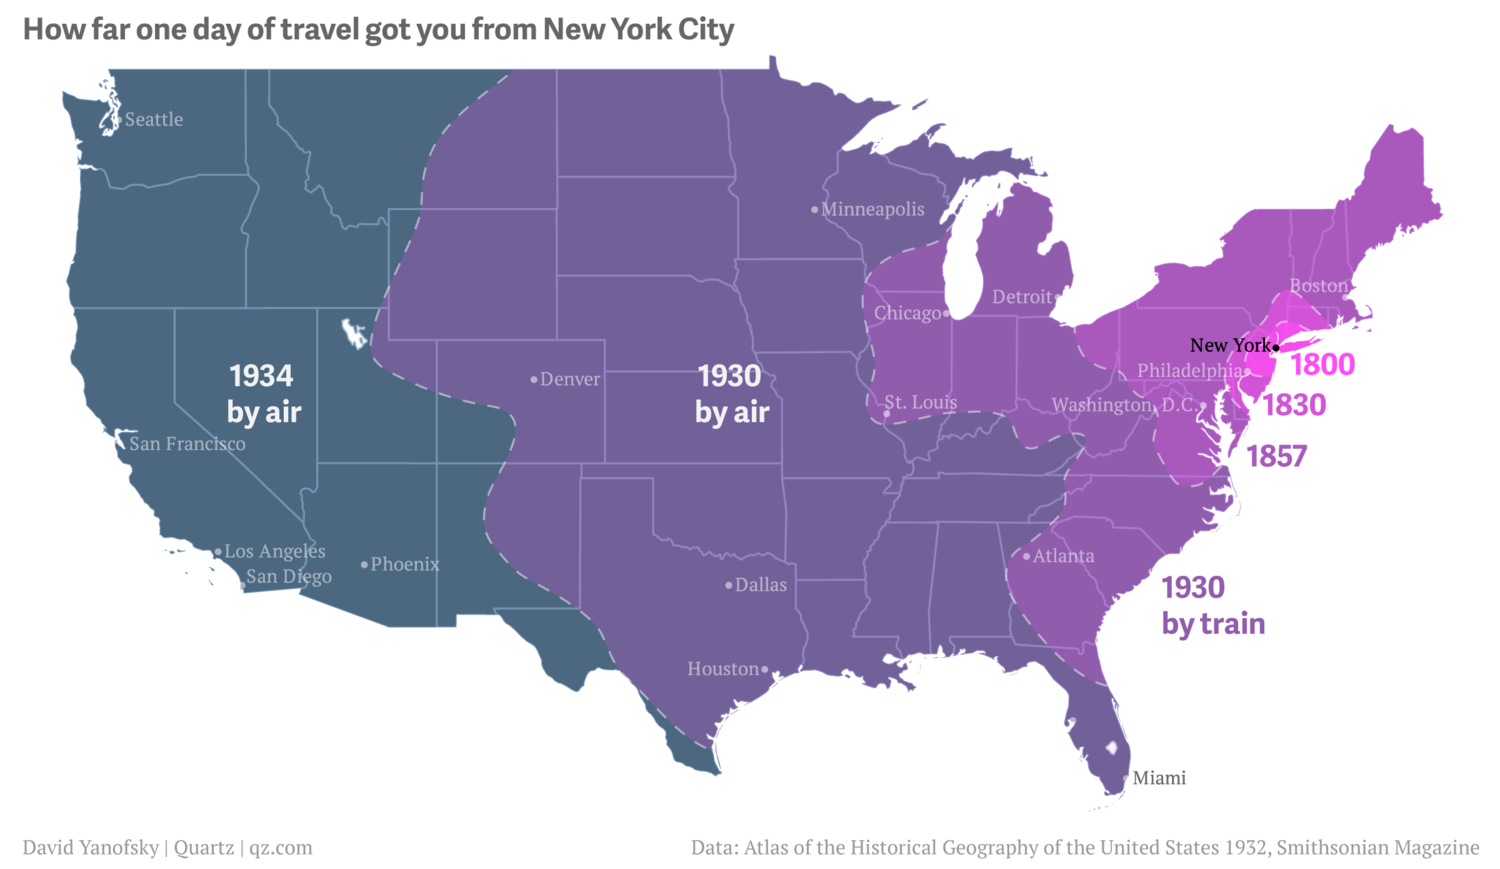 How far one day of travel got your from New York City